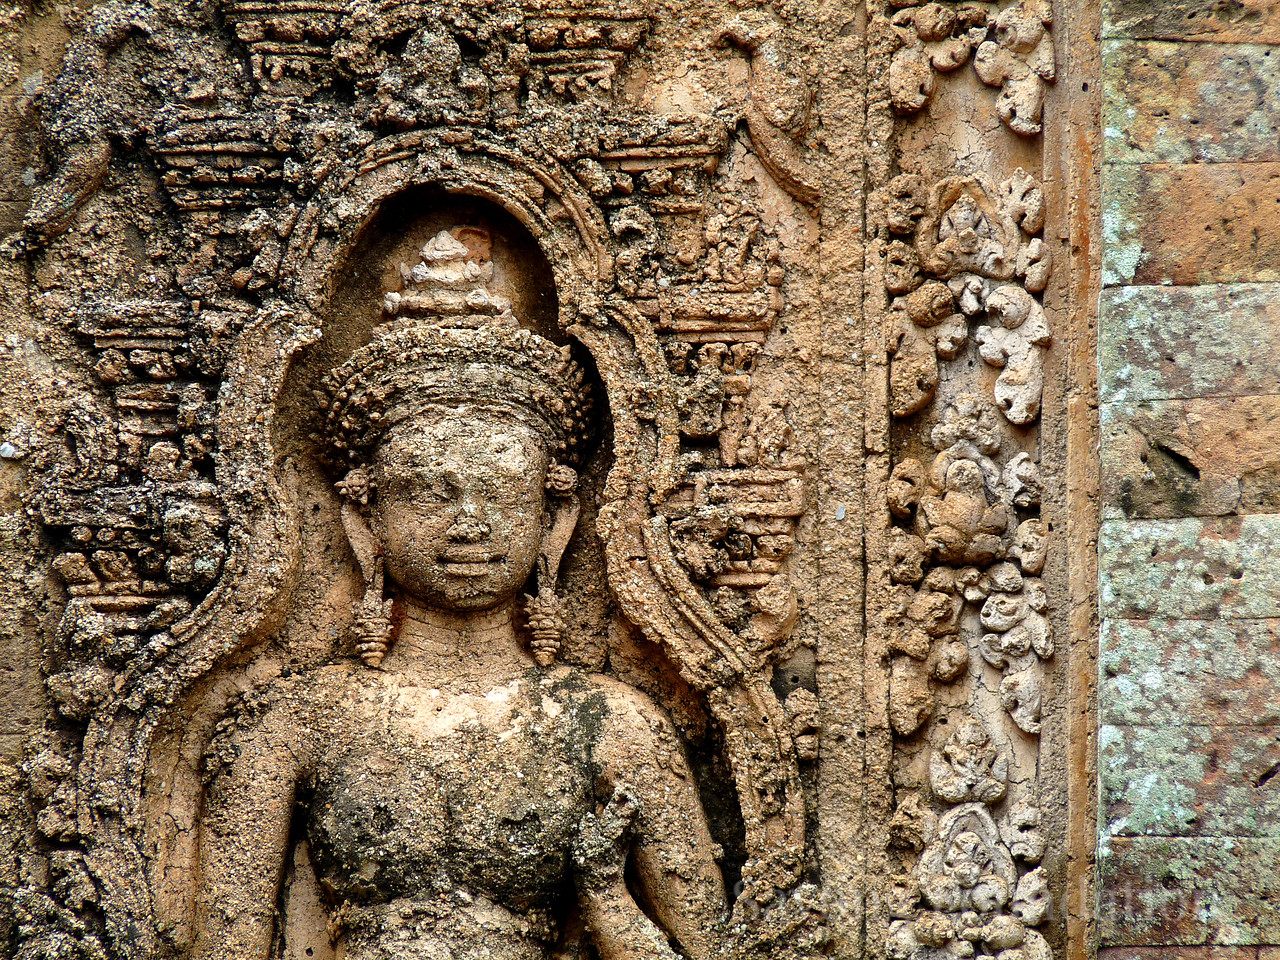 The Apsara